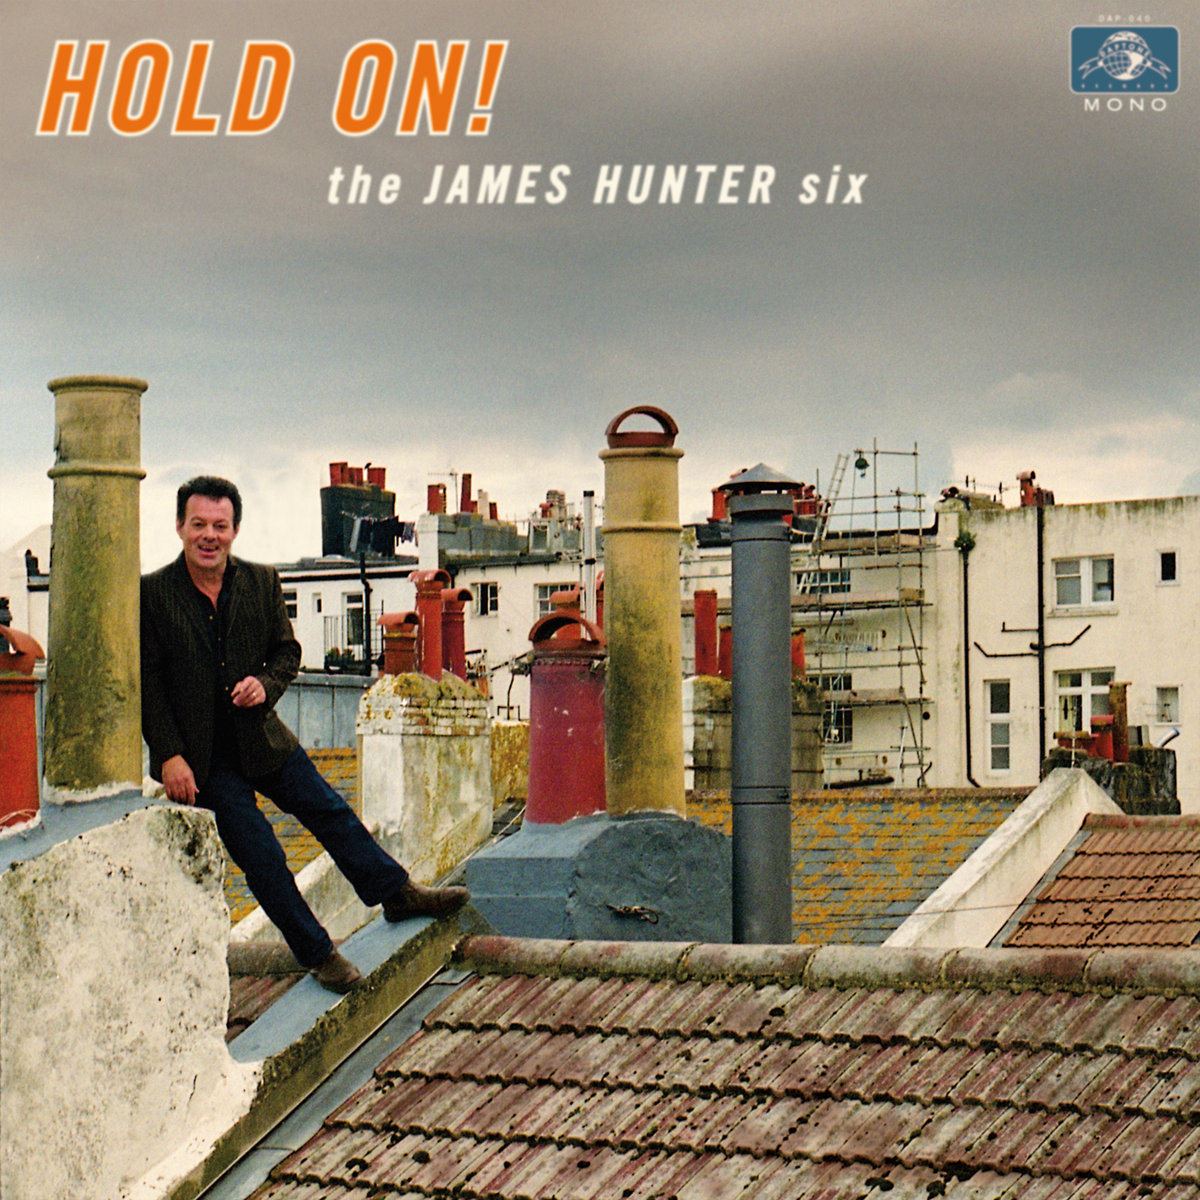 Image result for james hunter six hold on